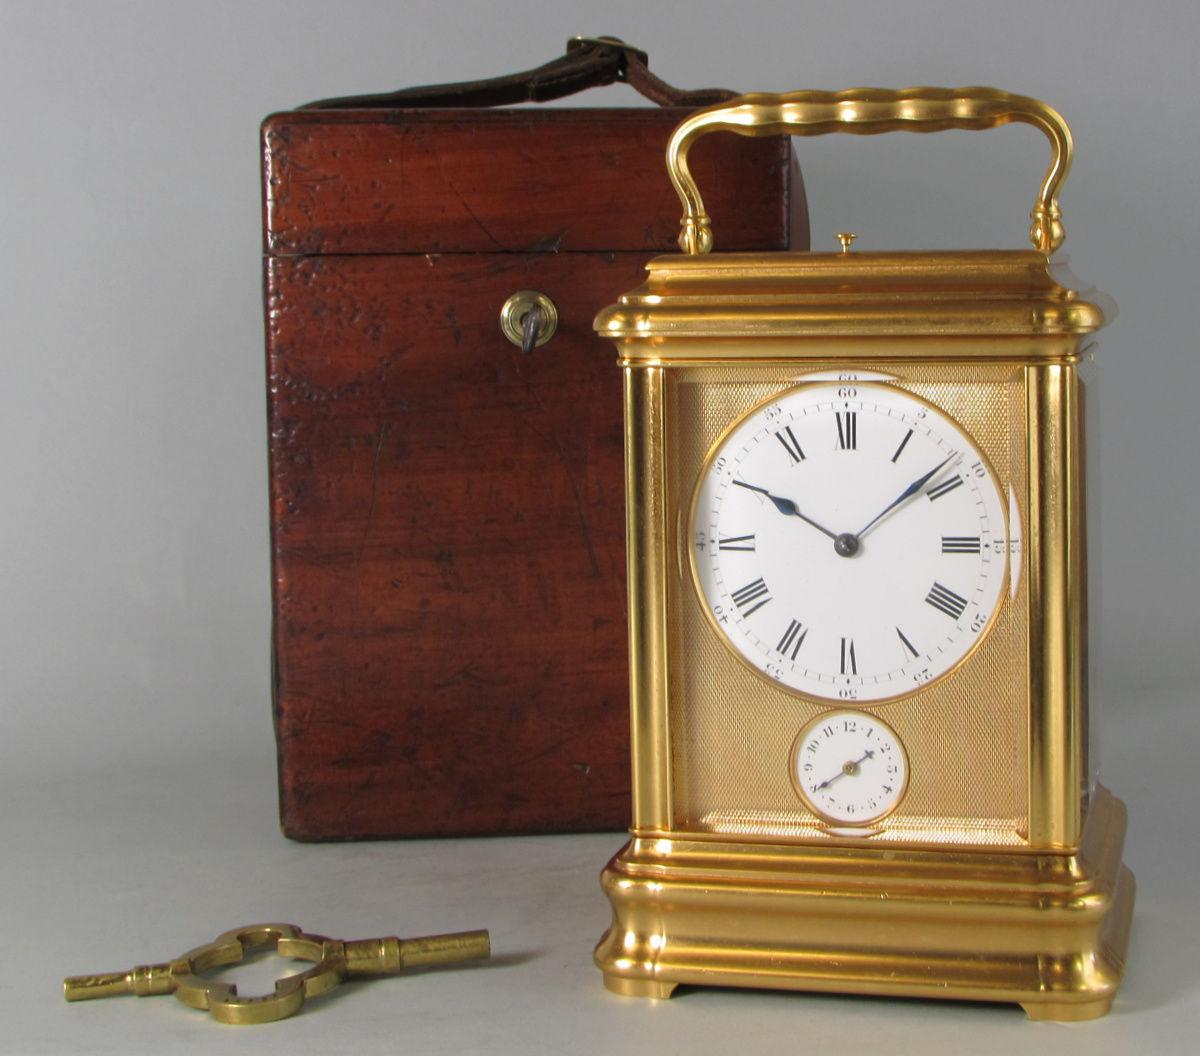 Drocourt Giant Grande-sonnerie carriage clock with box